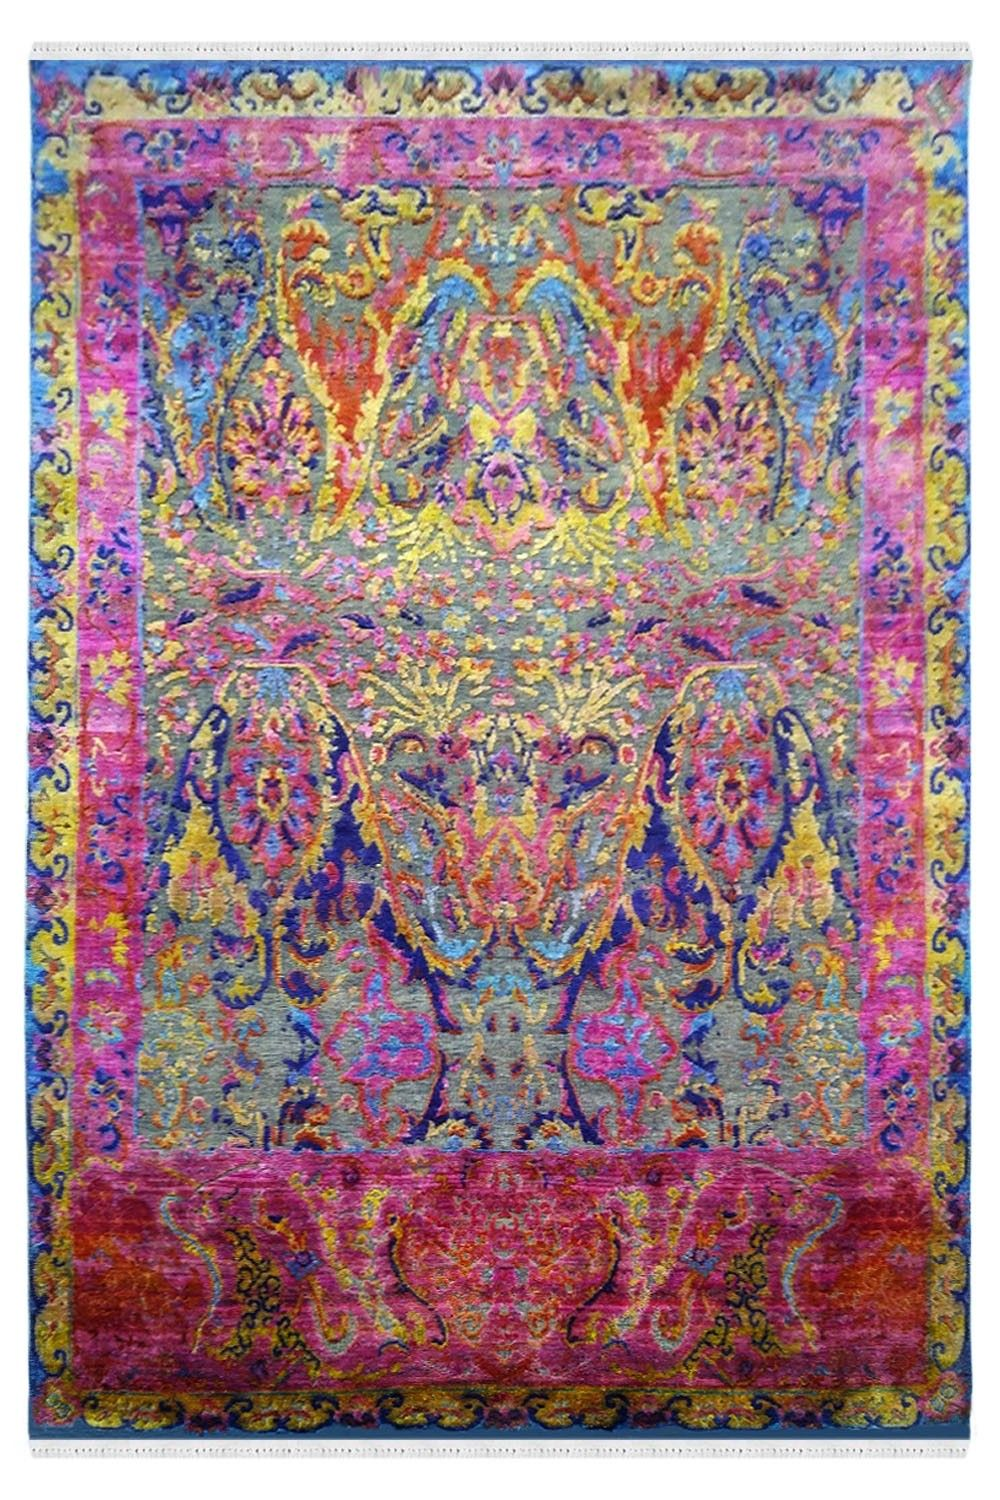 Shop Pink Victorian Hand Knotted Sari Silk Persian Rugs At Low